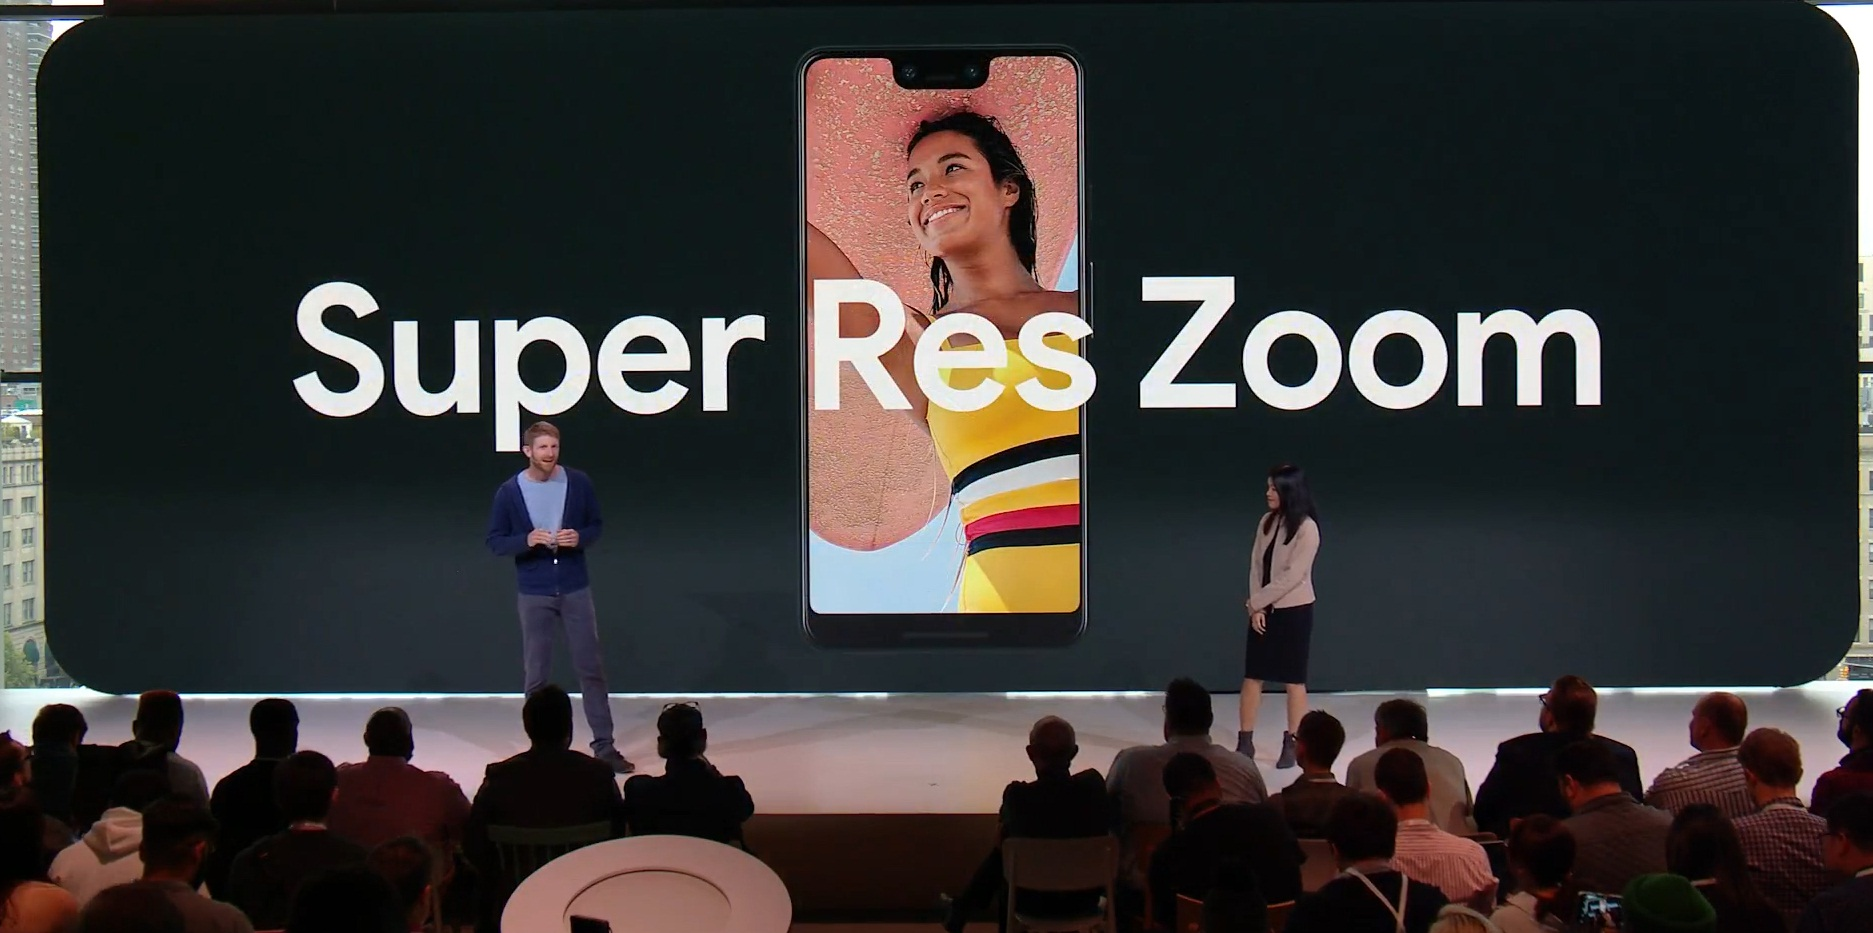 how to use super res zoon on the pixel 3's camera